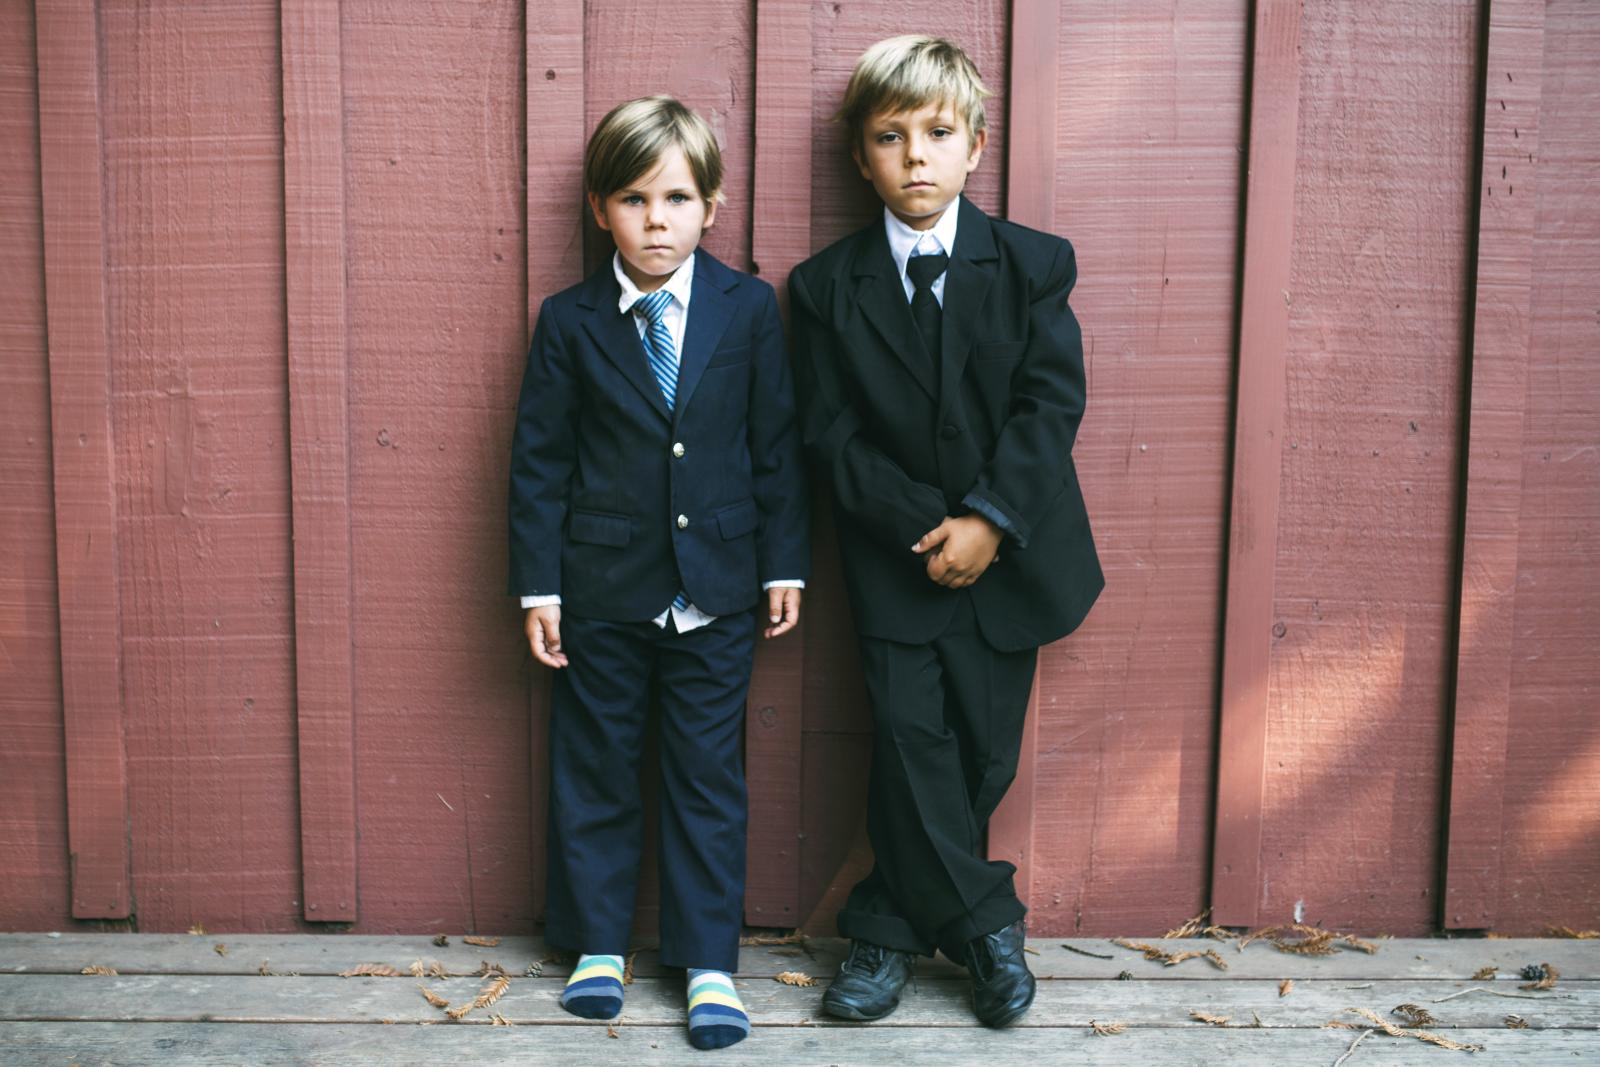 Brothers wearing suits while standing against wooden wall